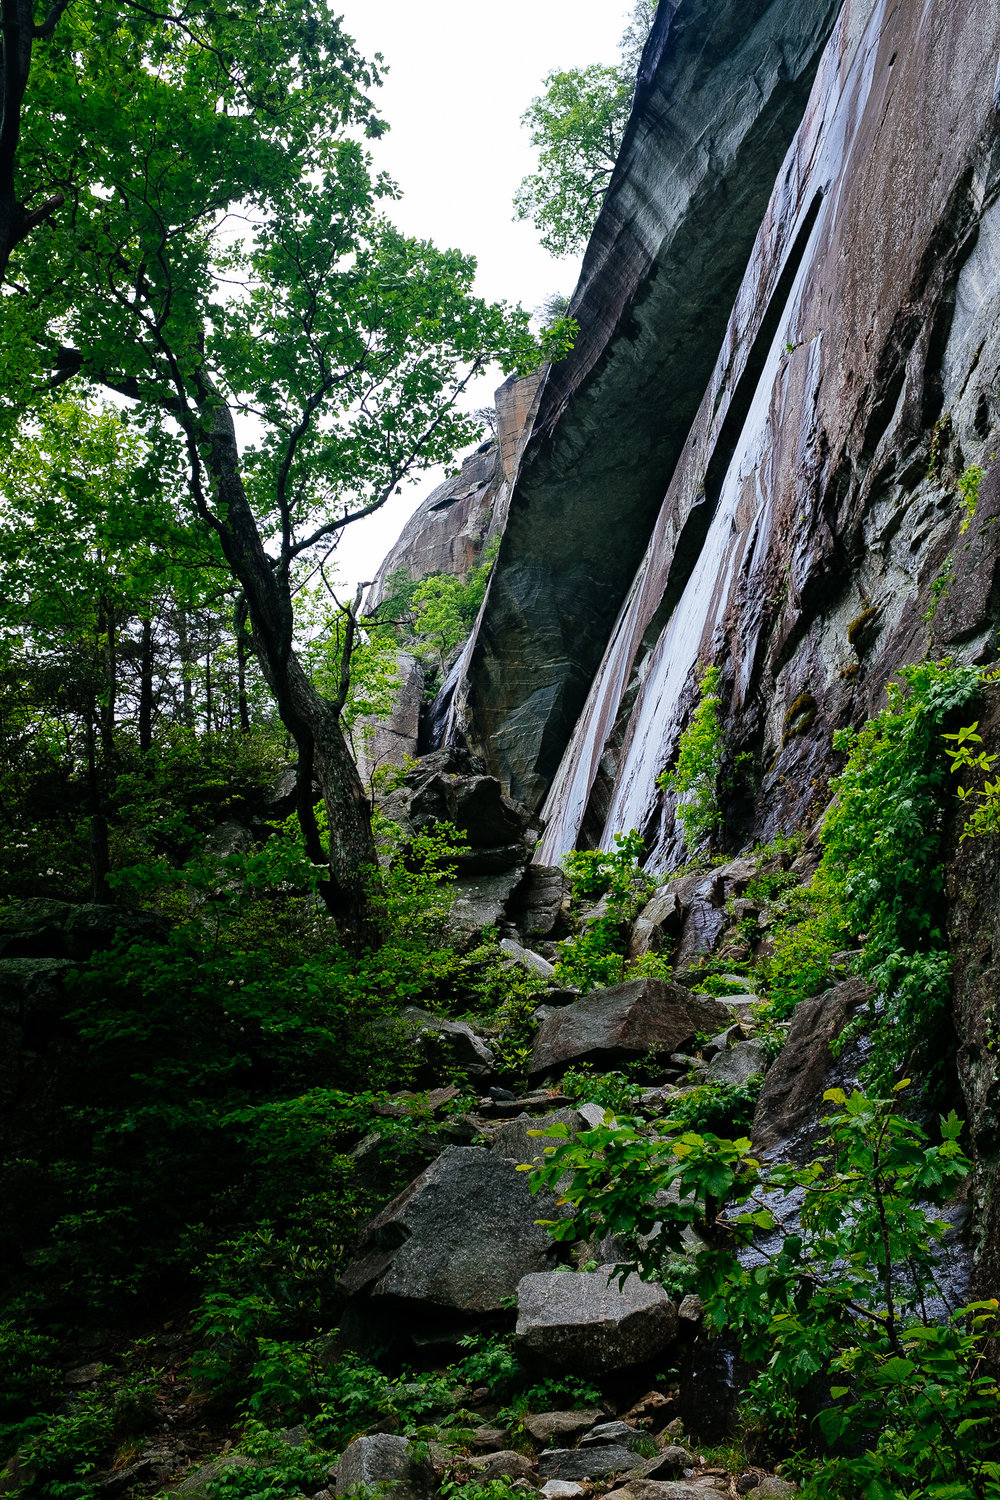 Chimney Rock State Park, North Carolina, just before a heavy downpour